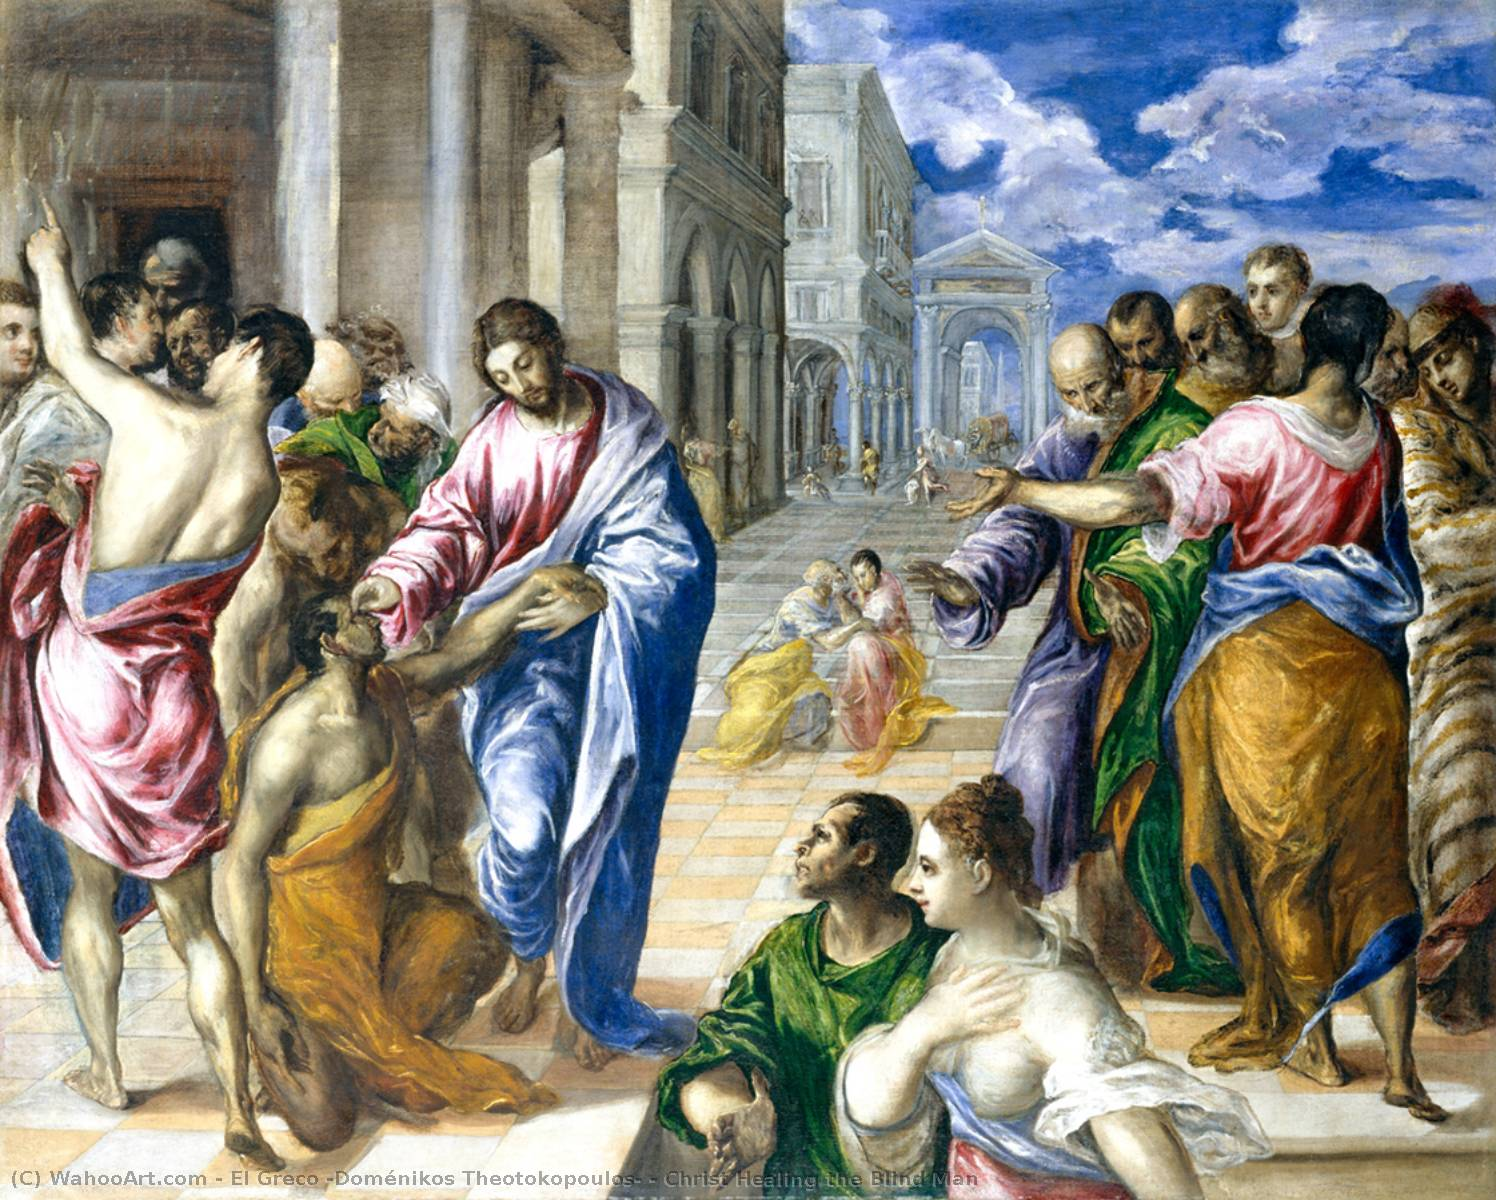 famous painting Christ Healing the Blind Man of El Greco (Doménikos Theotokopoulos)